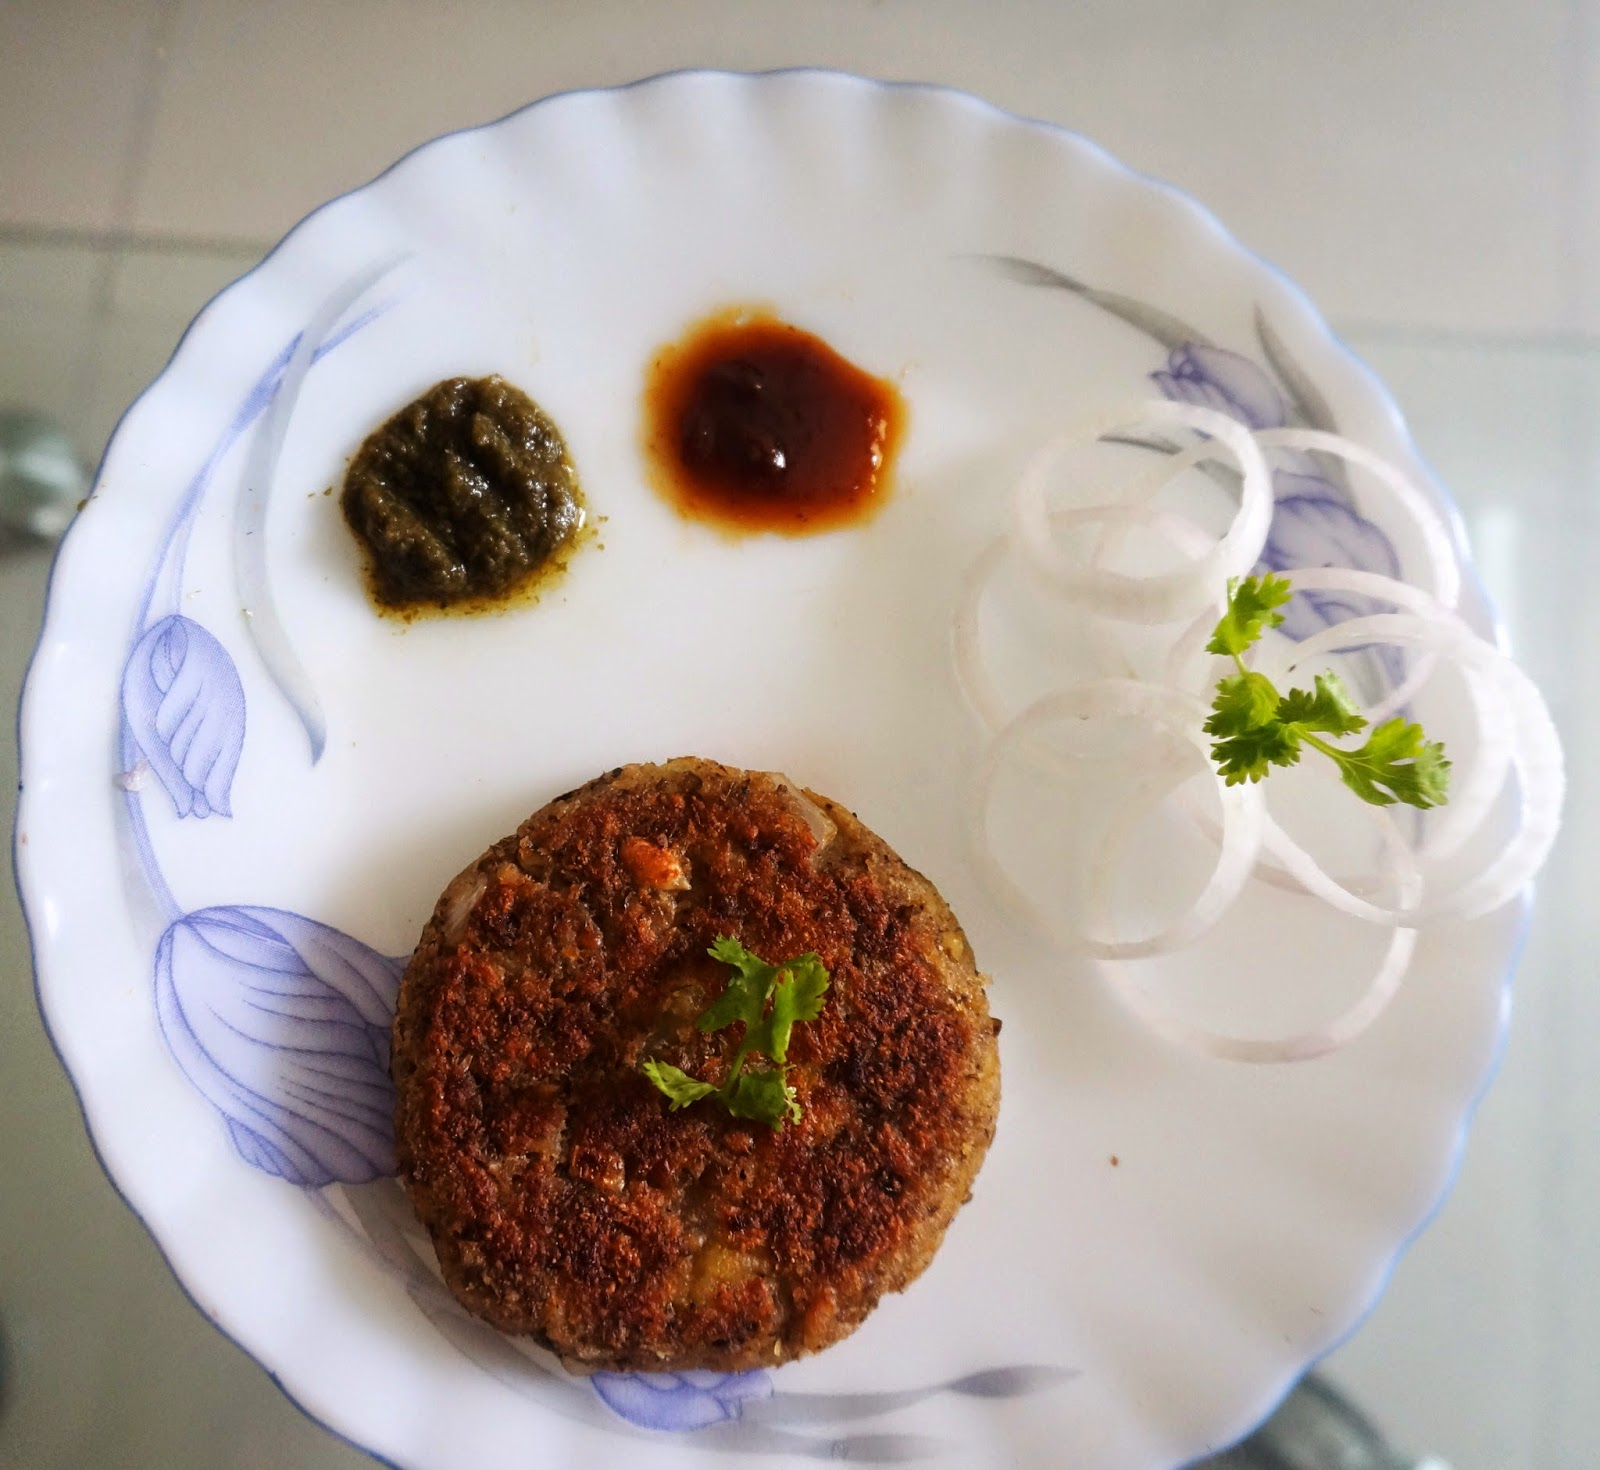 Sprouts Tikki stuffed with potato (Aloo)